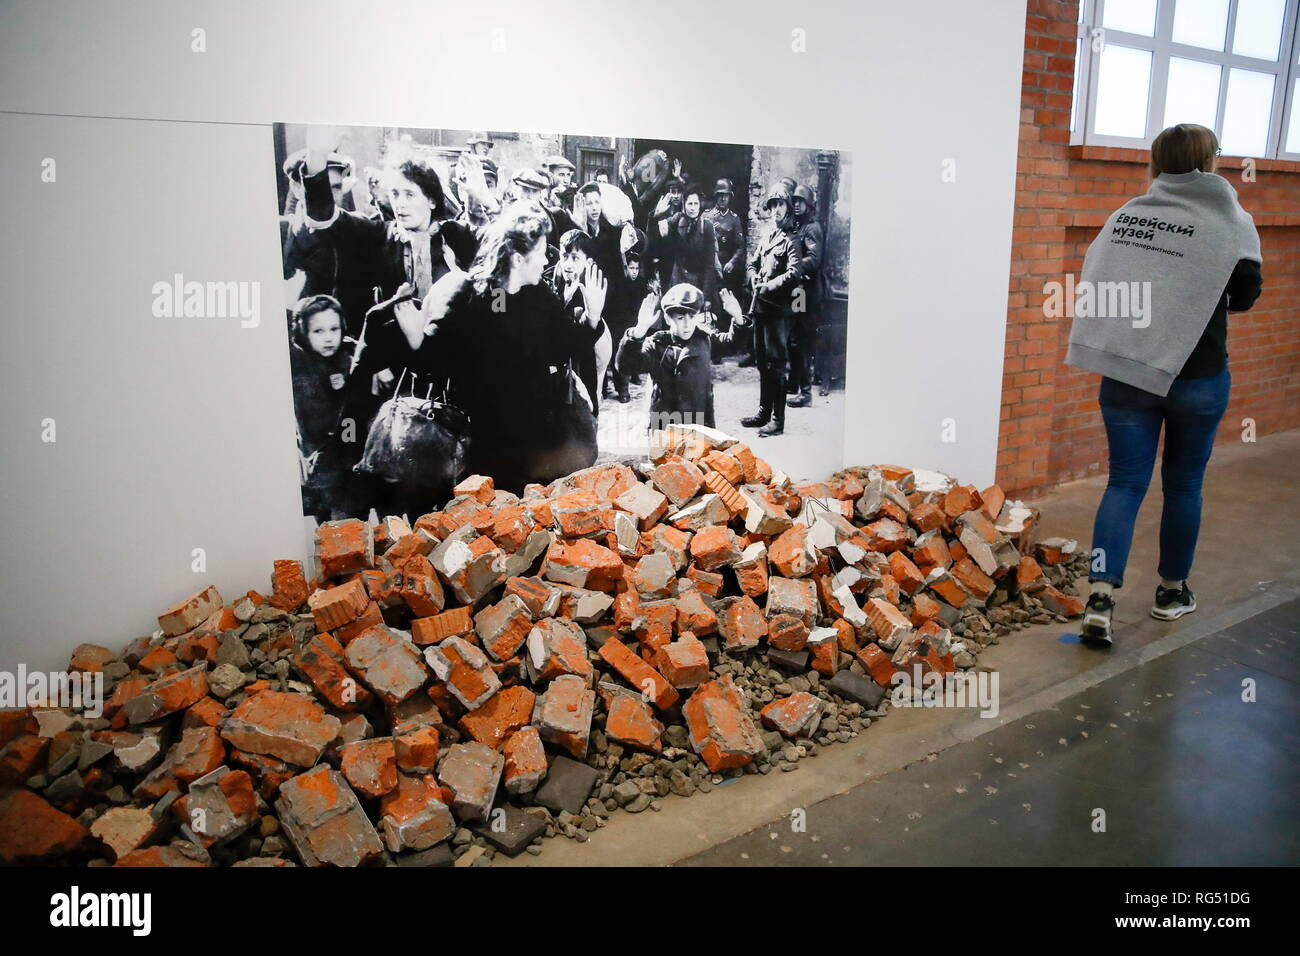 Moscow, Russia. 28th Jan, 2019. MOSCOW, RUSSIA - JANUARY 28, 2019: Showpieces on display at an exhibition titled 'Anne Frank. Holocaust Diaries' marking International Holocaust Remembrance Day at Moscow's Jewish Museum and Tolerance Centre. Artyom Geodakyan/TASS Credit: ITAR-TASS News Agency/Alamy Live News - Stock Image